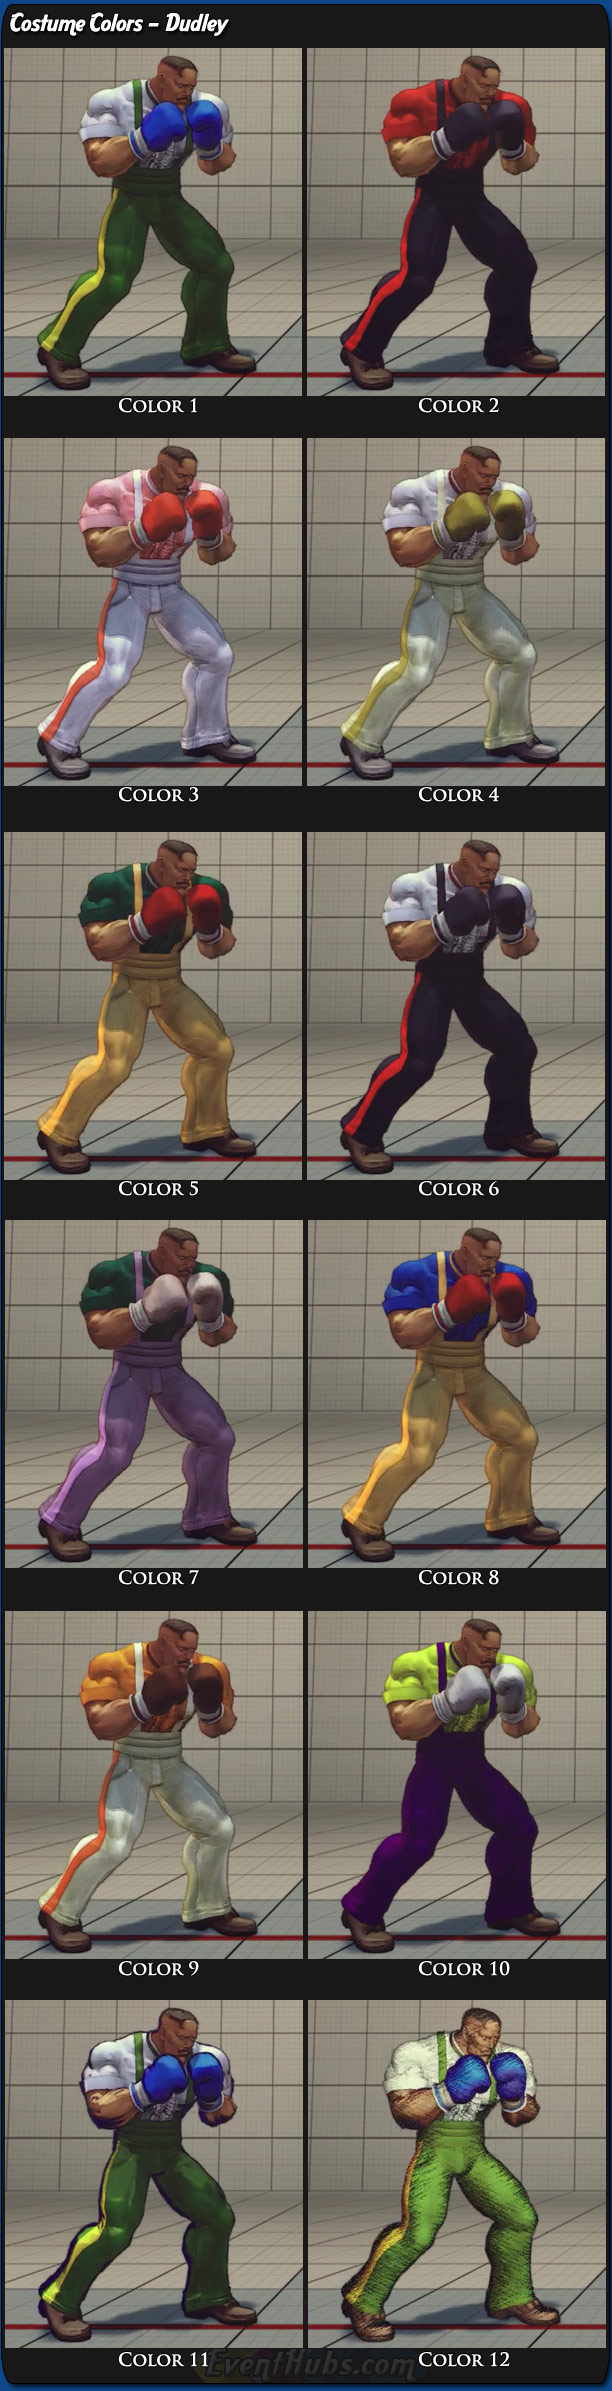 Dudley's main costume colors for Super Street Fighter 4